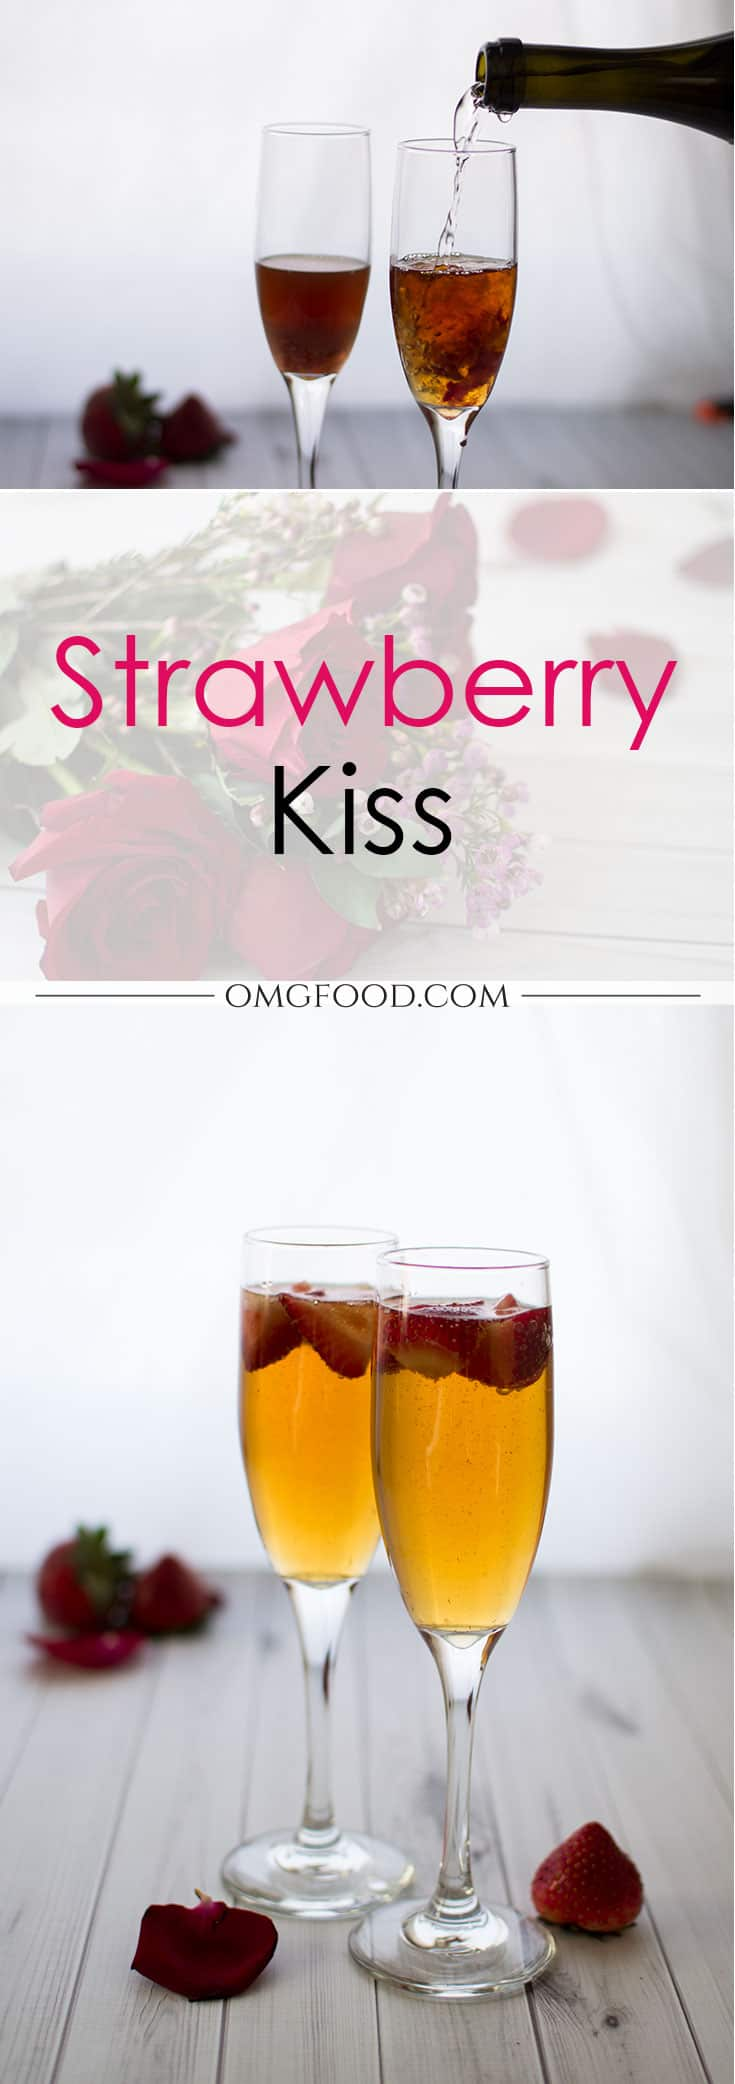 Strawberry Kiss | omgfood.com